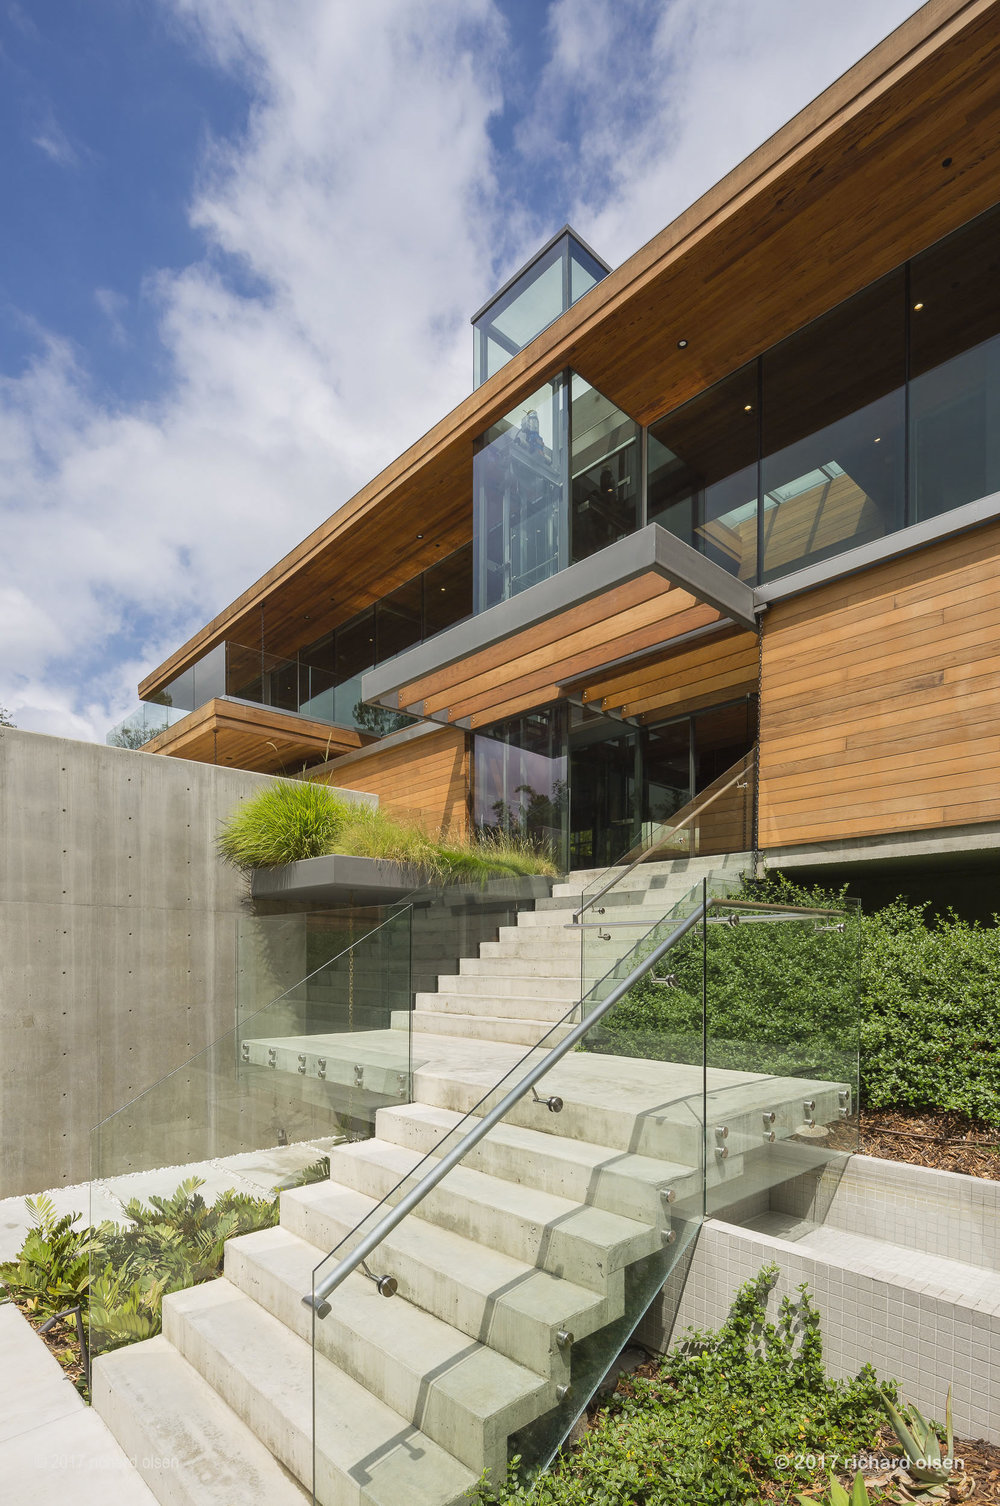 residence, beverly hills. kappe architects planners.